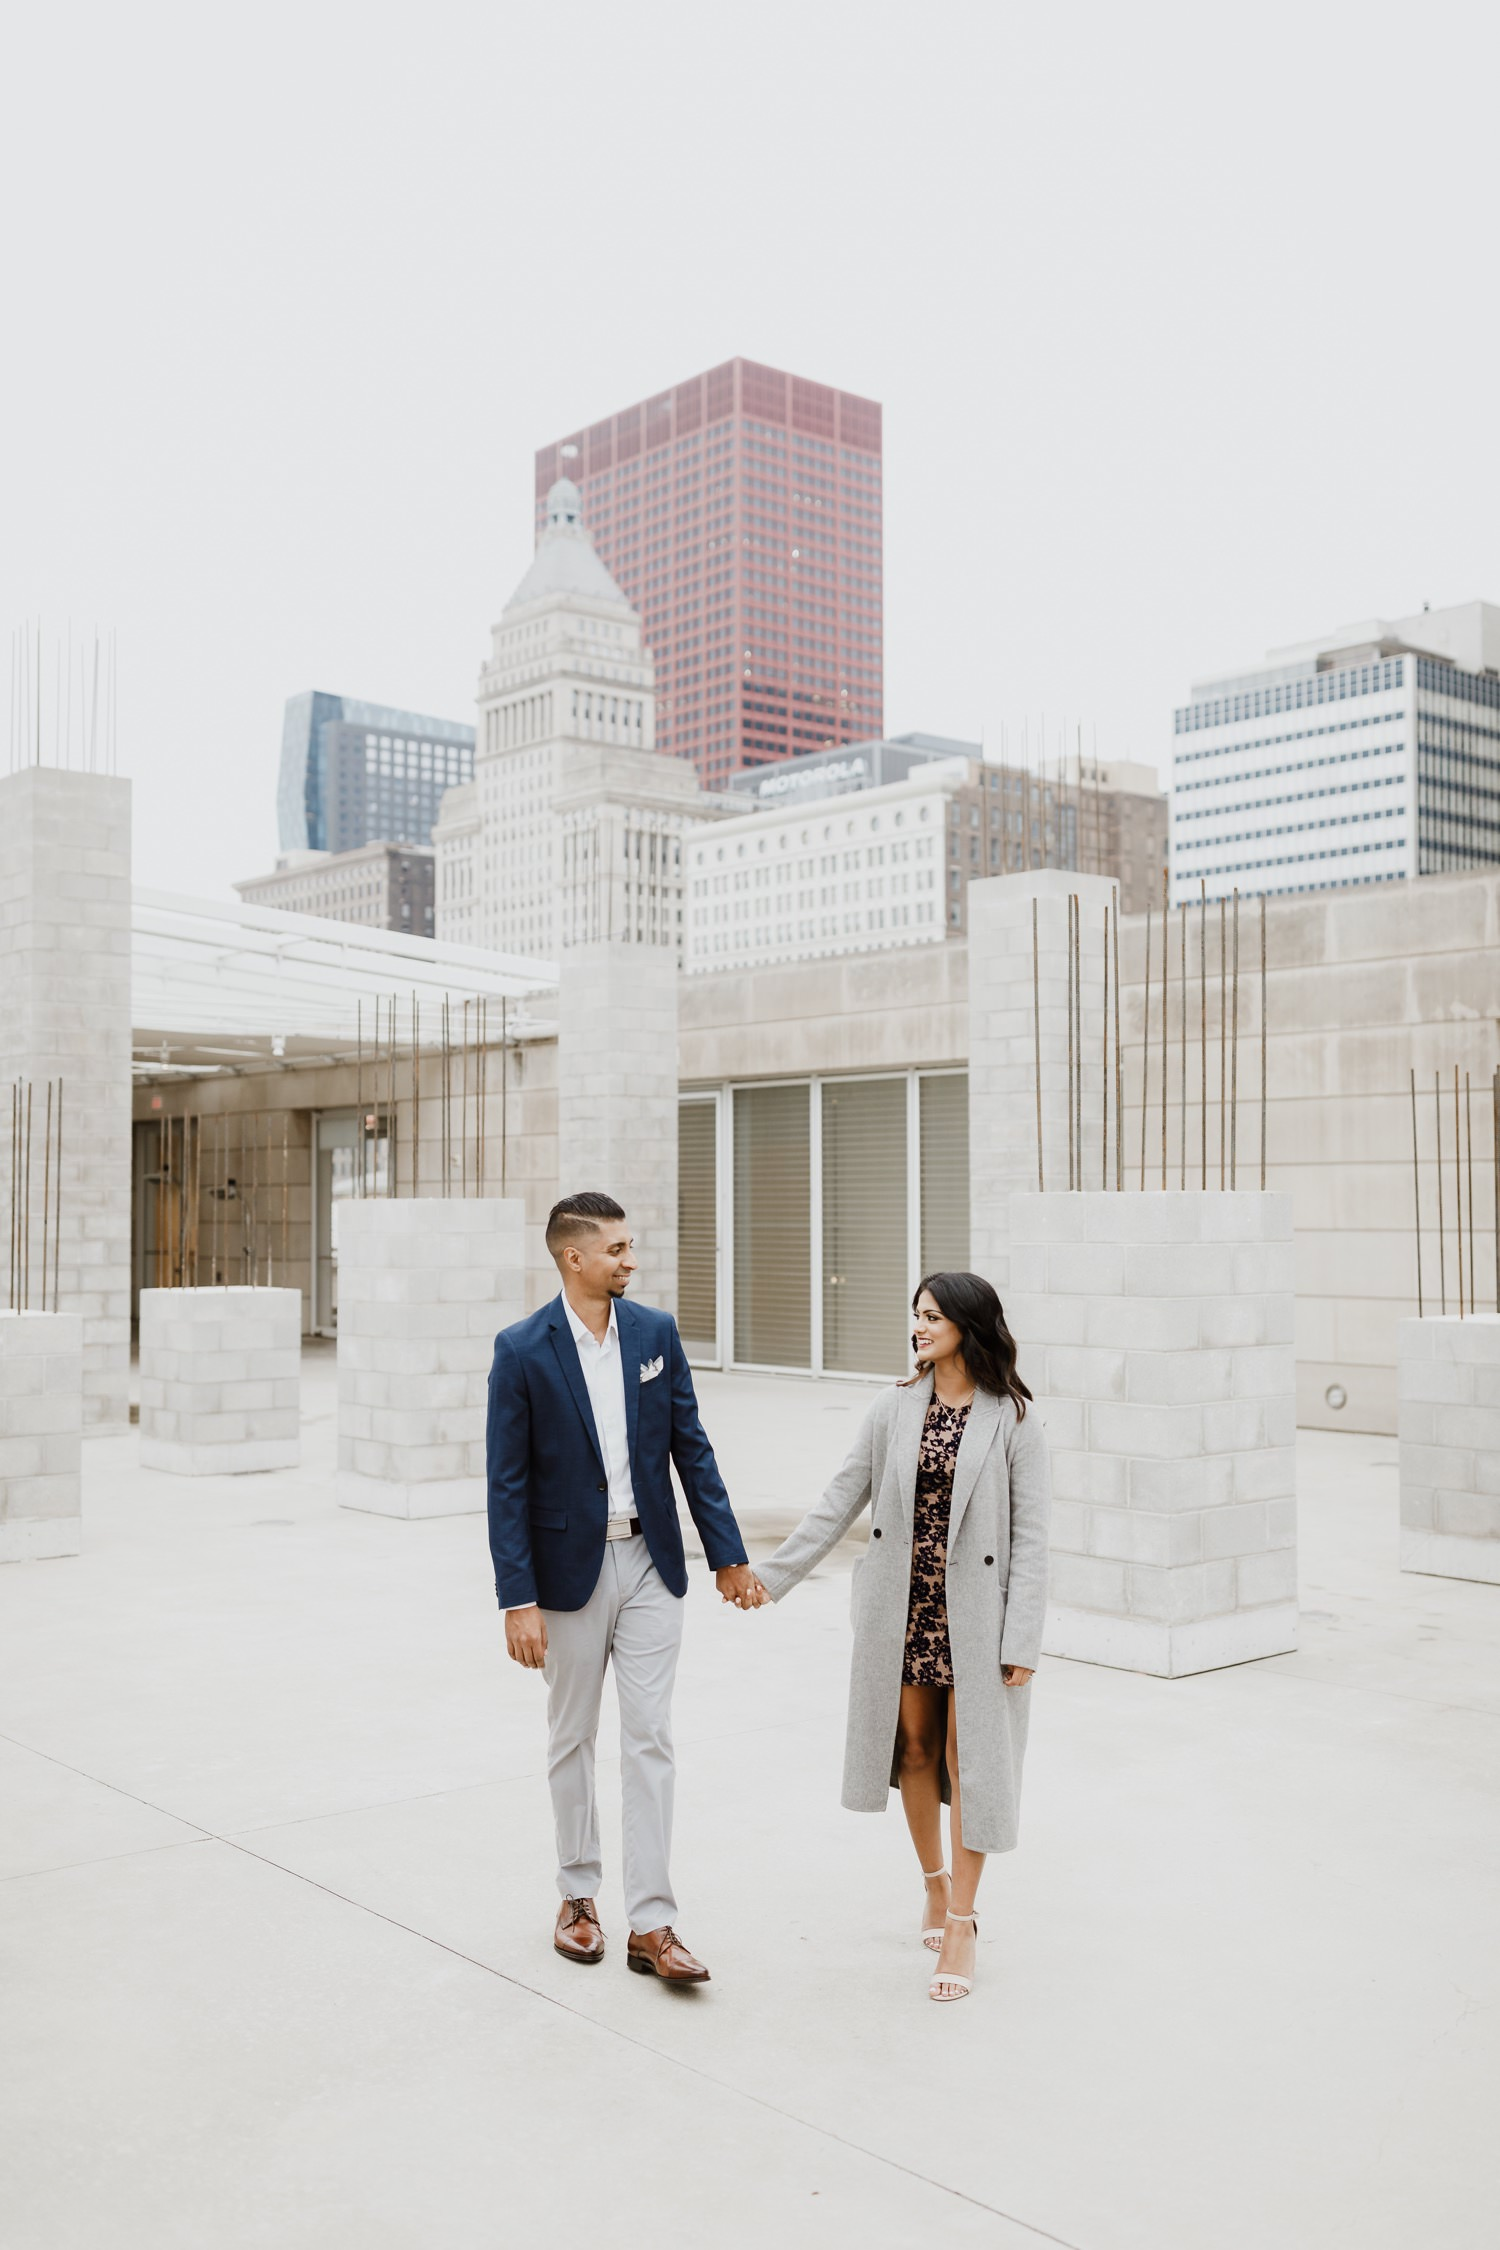 Bride and groom walk together at Art Institute in Chicago